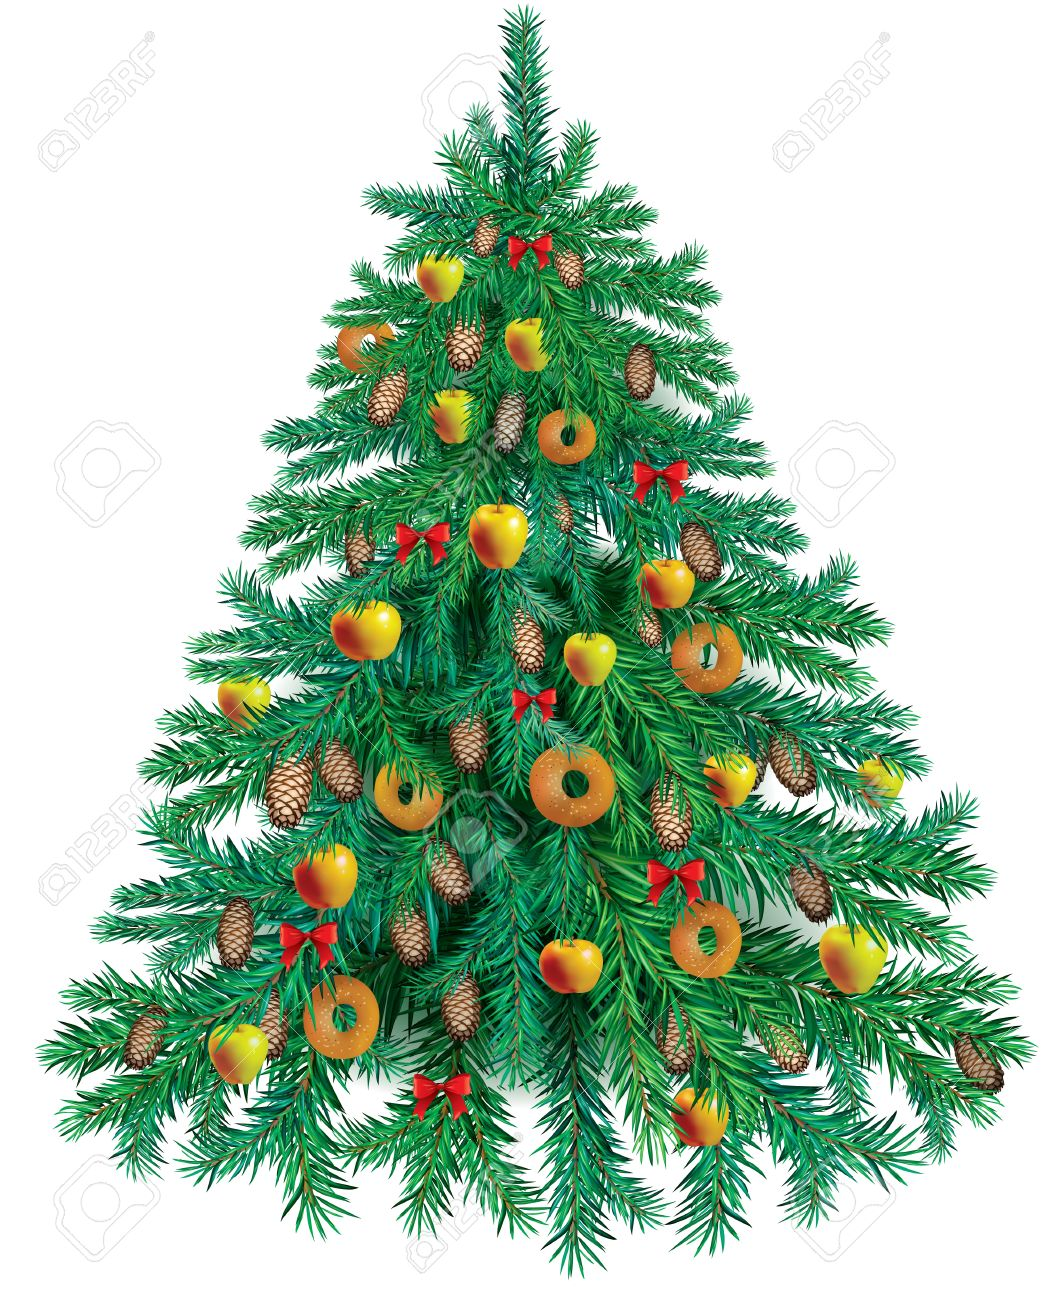 15171714-Tasty-Christmas-tree-decorated-with-apples-and-bagels-Stock-Photo